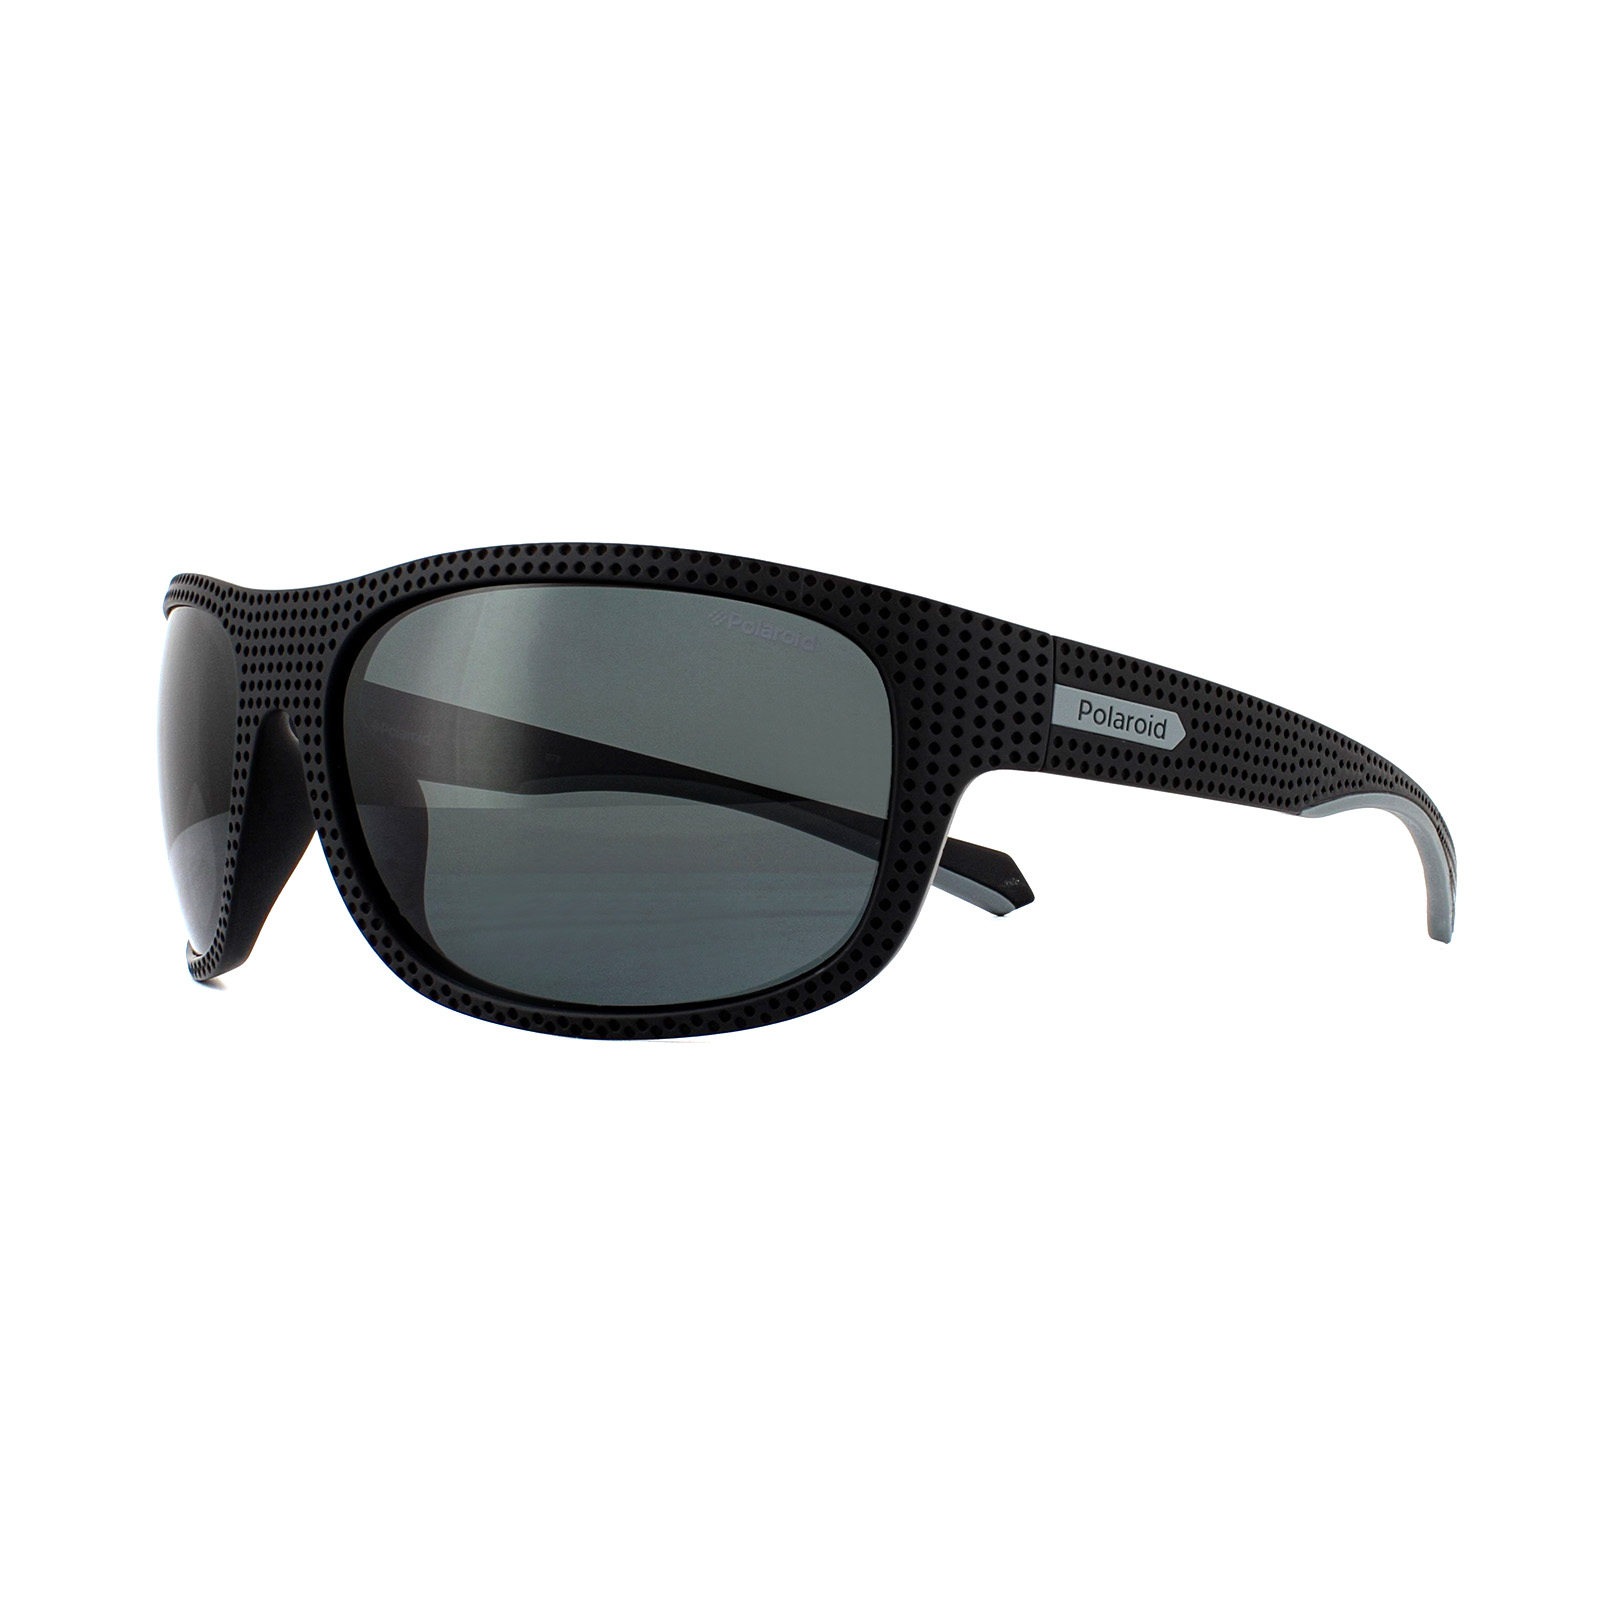 c24874b57a Sentinel Polaroid Sport Sunglasses PLD 7022 S 807 M9 Black Grey Polarized